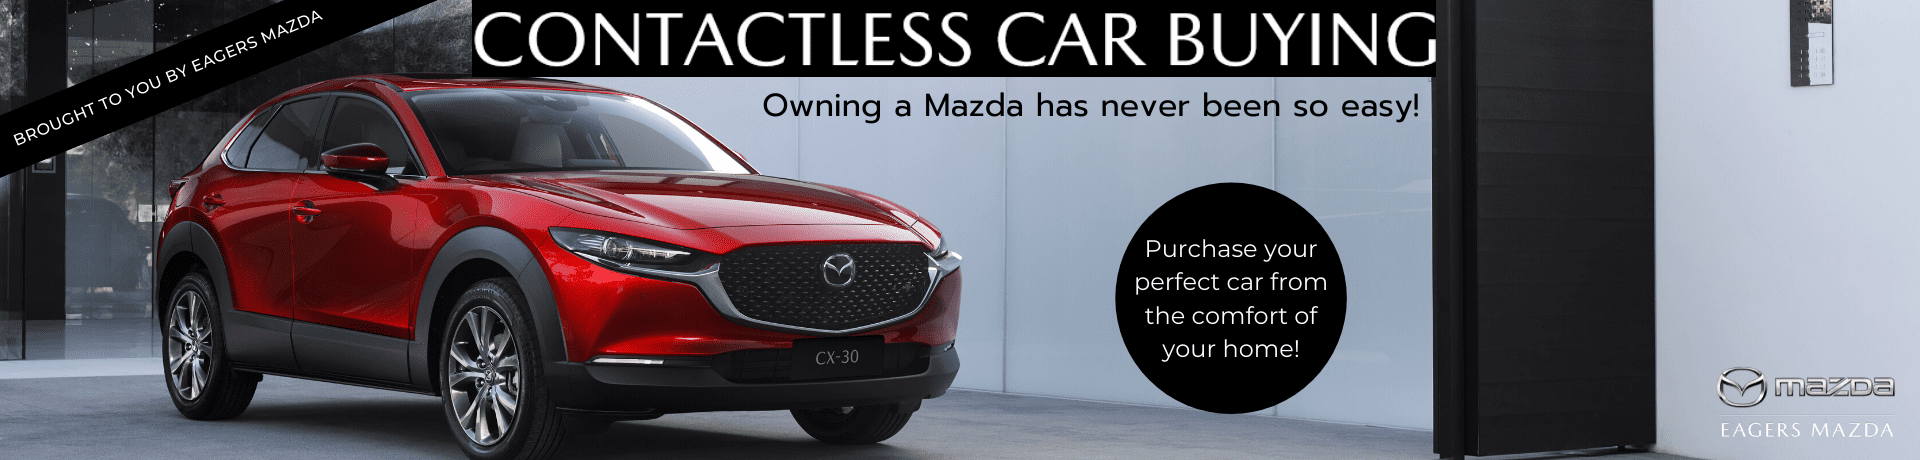 exclusive-to-eagers-mazda-1